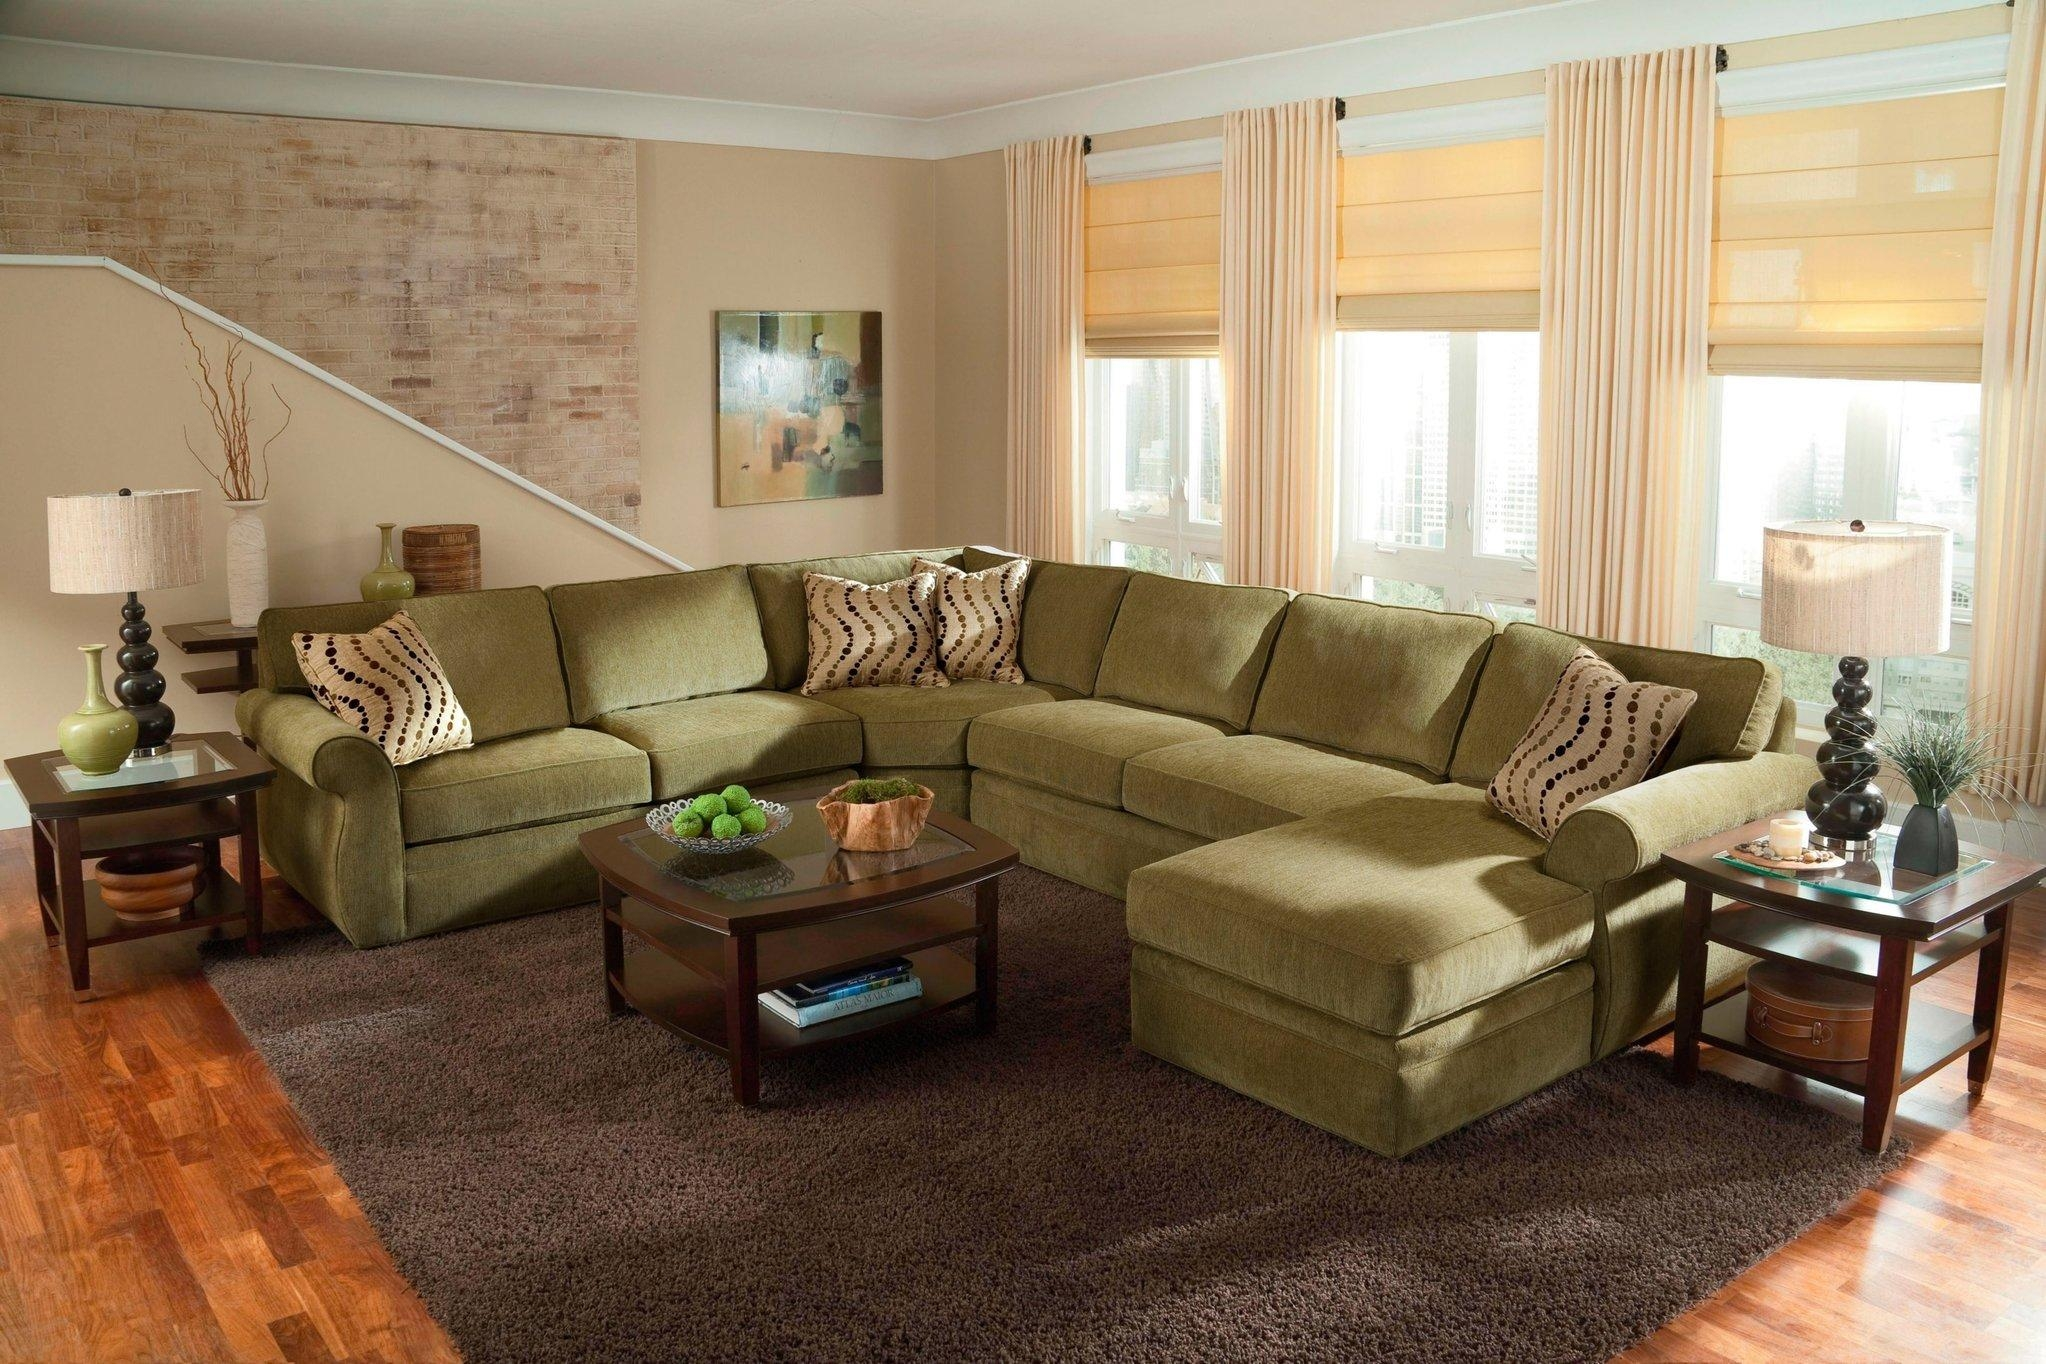 Interior: Luxury Oversized Sectional Sofa For Awesome Living Room For Oversized Sectional Sofa (Image 11 of 20)